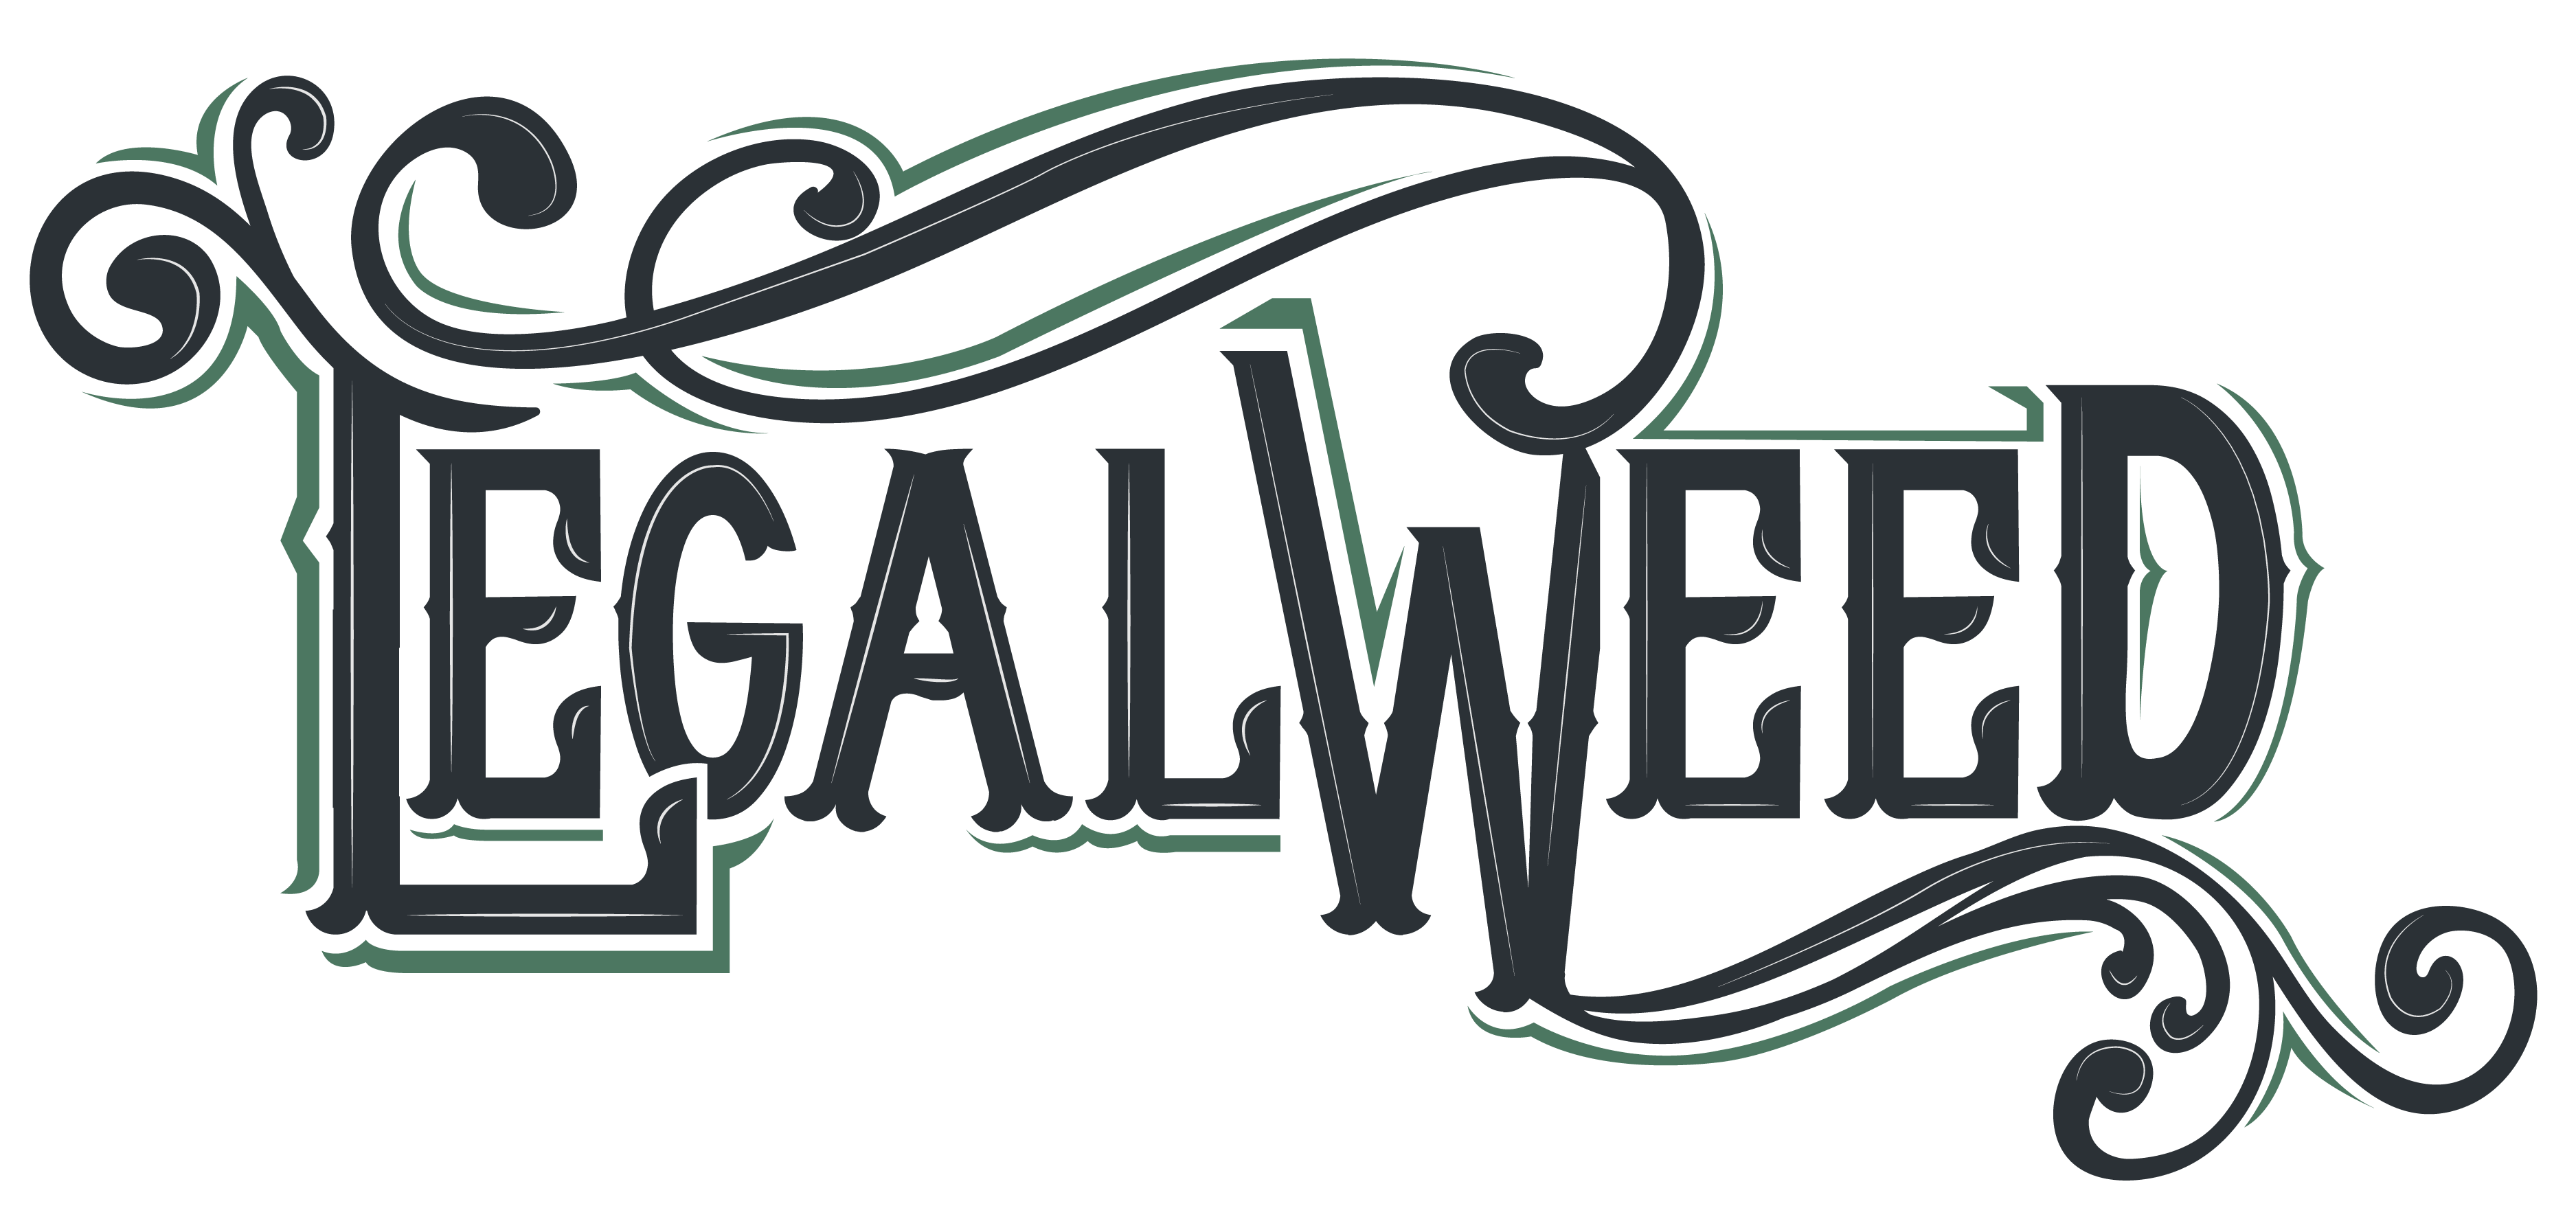 Legal Weed Barcelona Logo